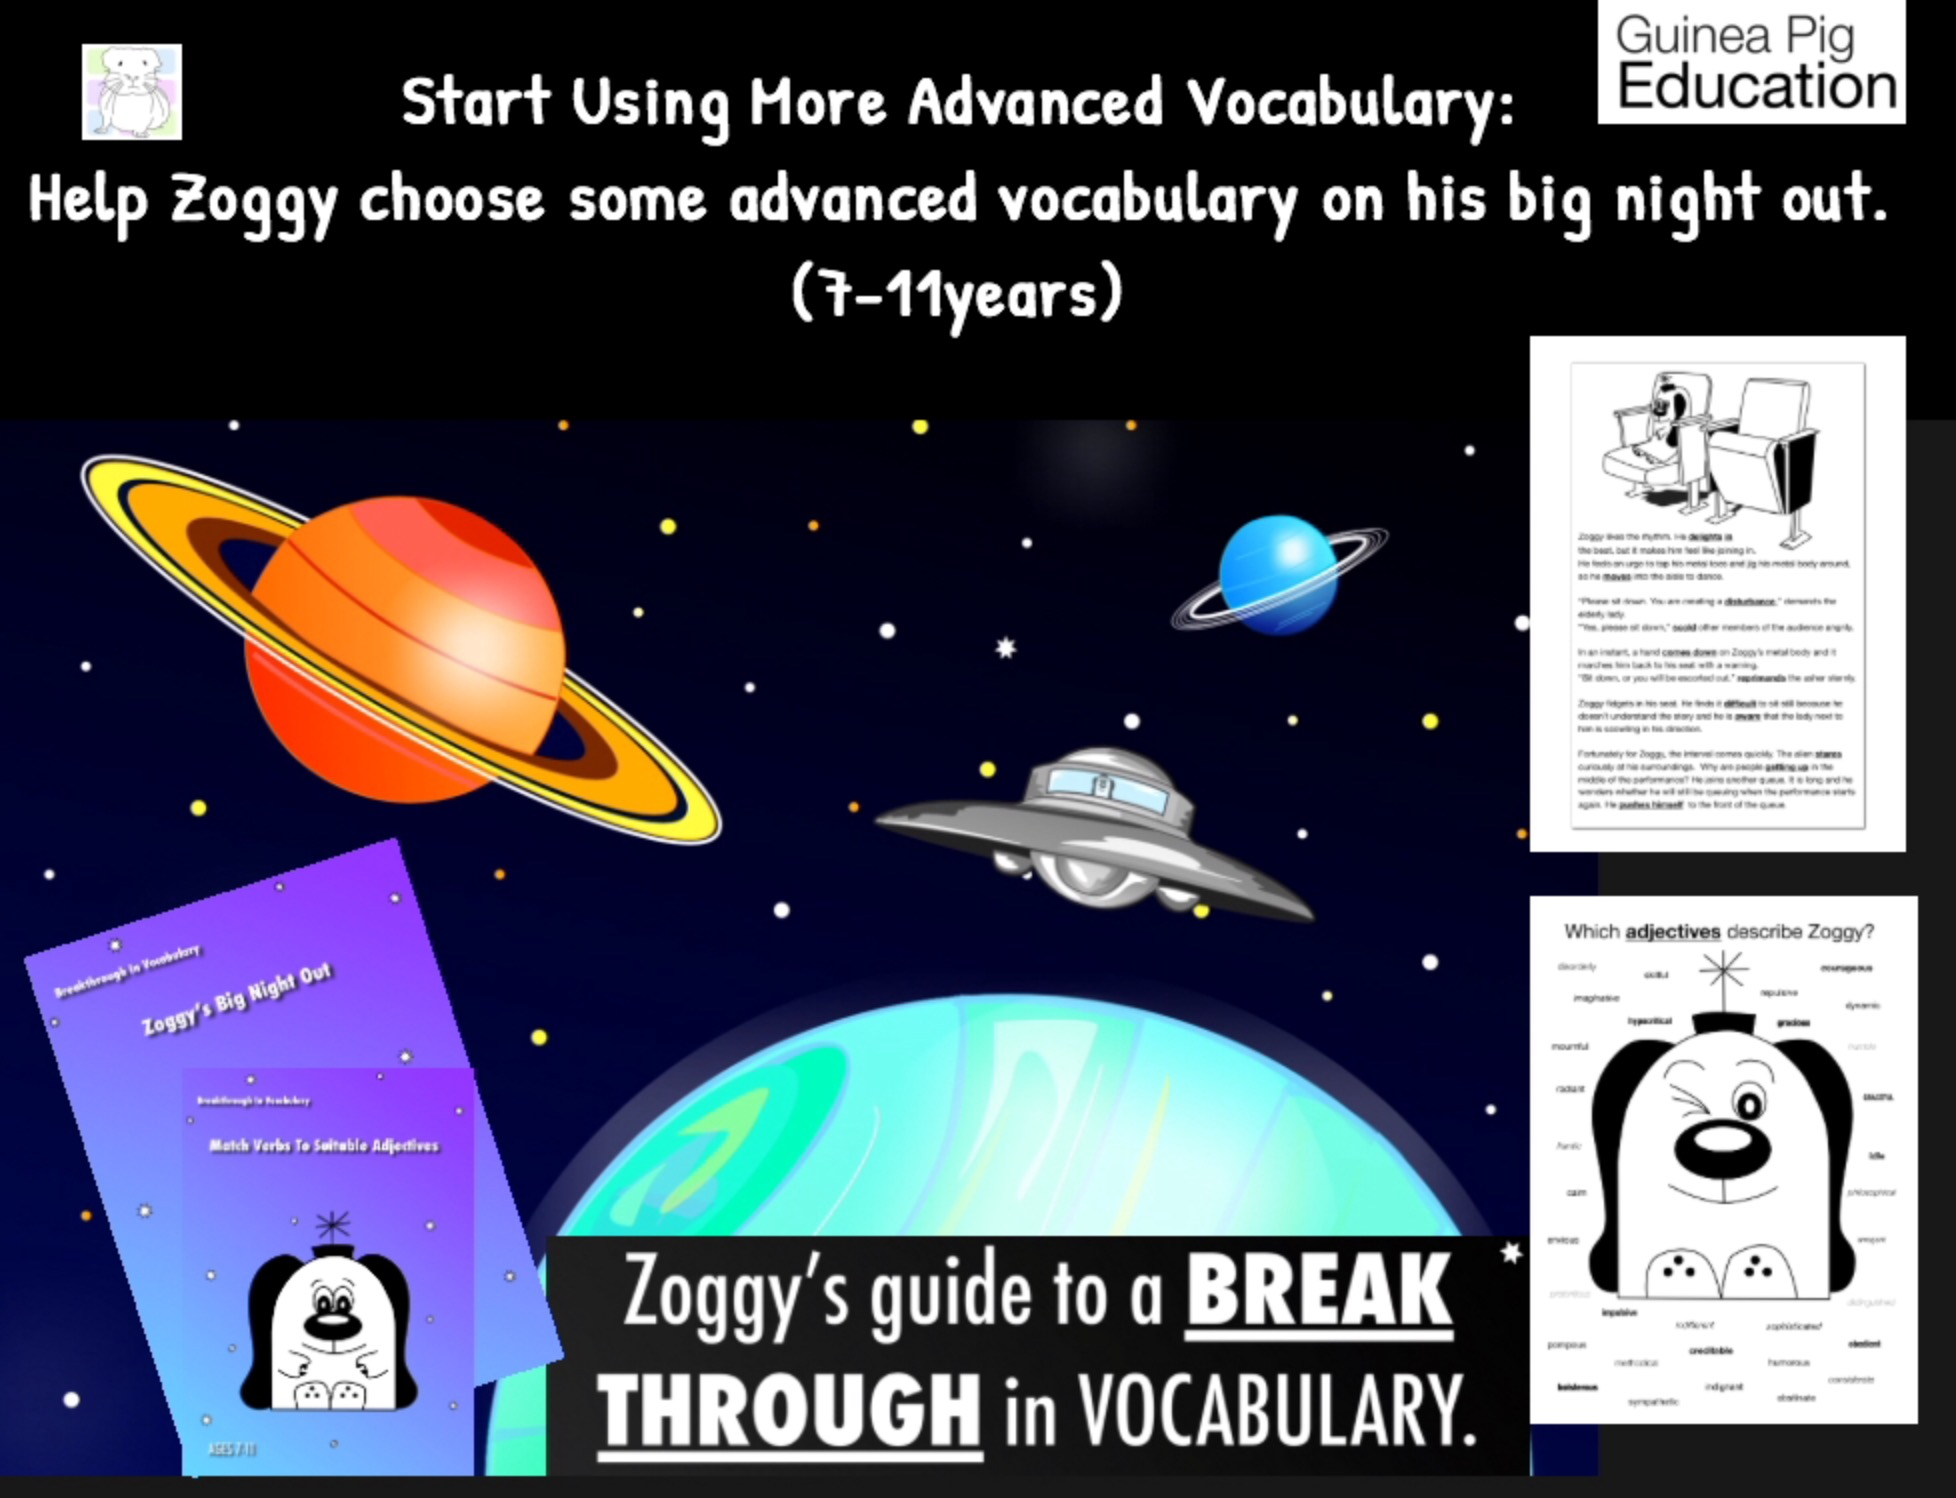 Help Zoggy Choose Some Advanced Vocabulary On His Big Night Out (7-11 years)